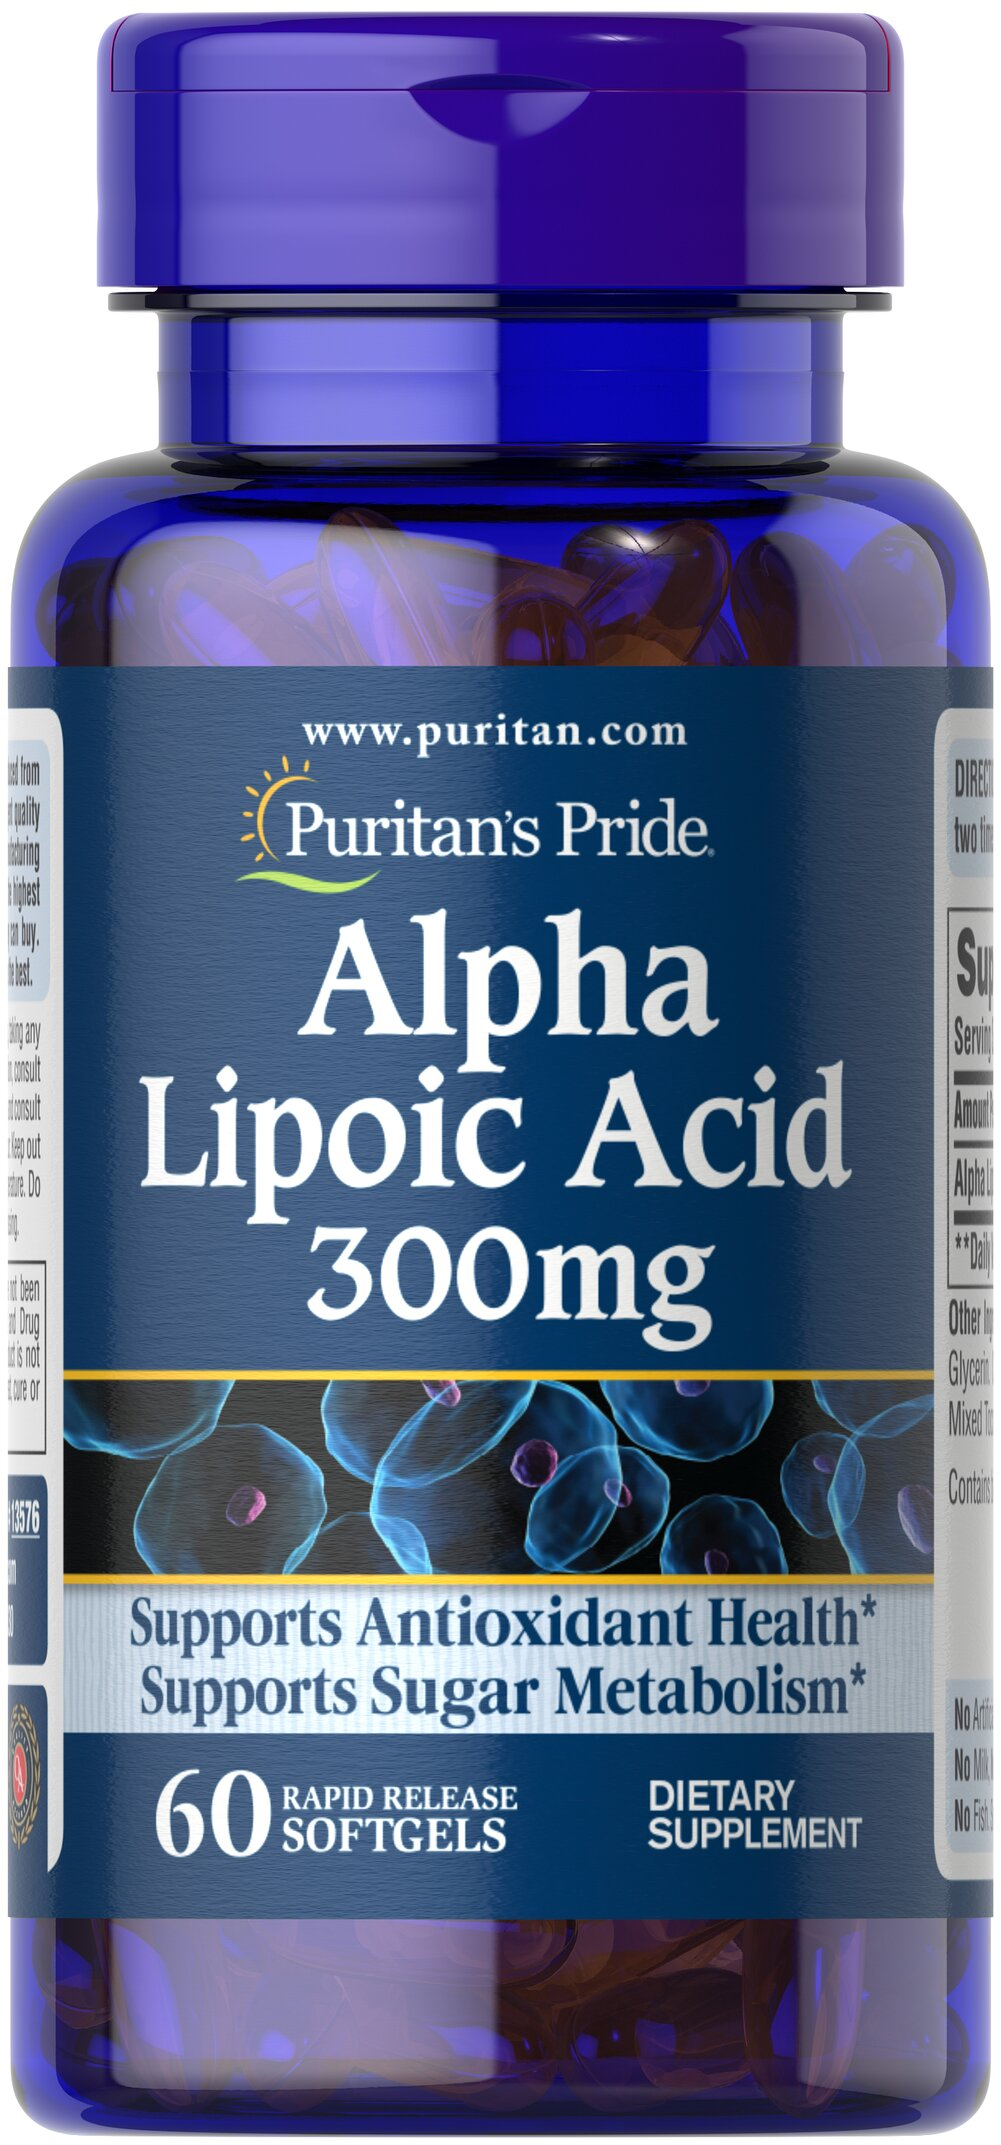 "Alpha Lipoic Acid 300 mg <p>Alpha Lipoic Acid (ALA) helps metabolize sugar, especially in muscles, where it promotes energy.**</p><p>ALA is also beneficial for liver health, and helps to revitalize the underlying structure of the skin so it can look healthier and more radiant.**</p><p>ALA is often called the ""universal antioxidant"" for its ability to help neutralize cell-damaging free radicals.** </p> 60 Softgels 300 mg $11.98"